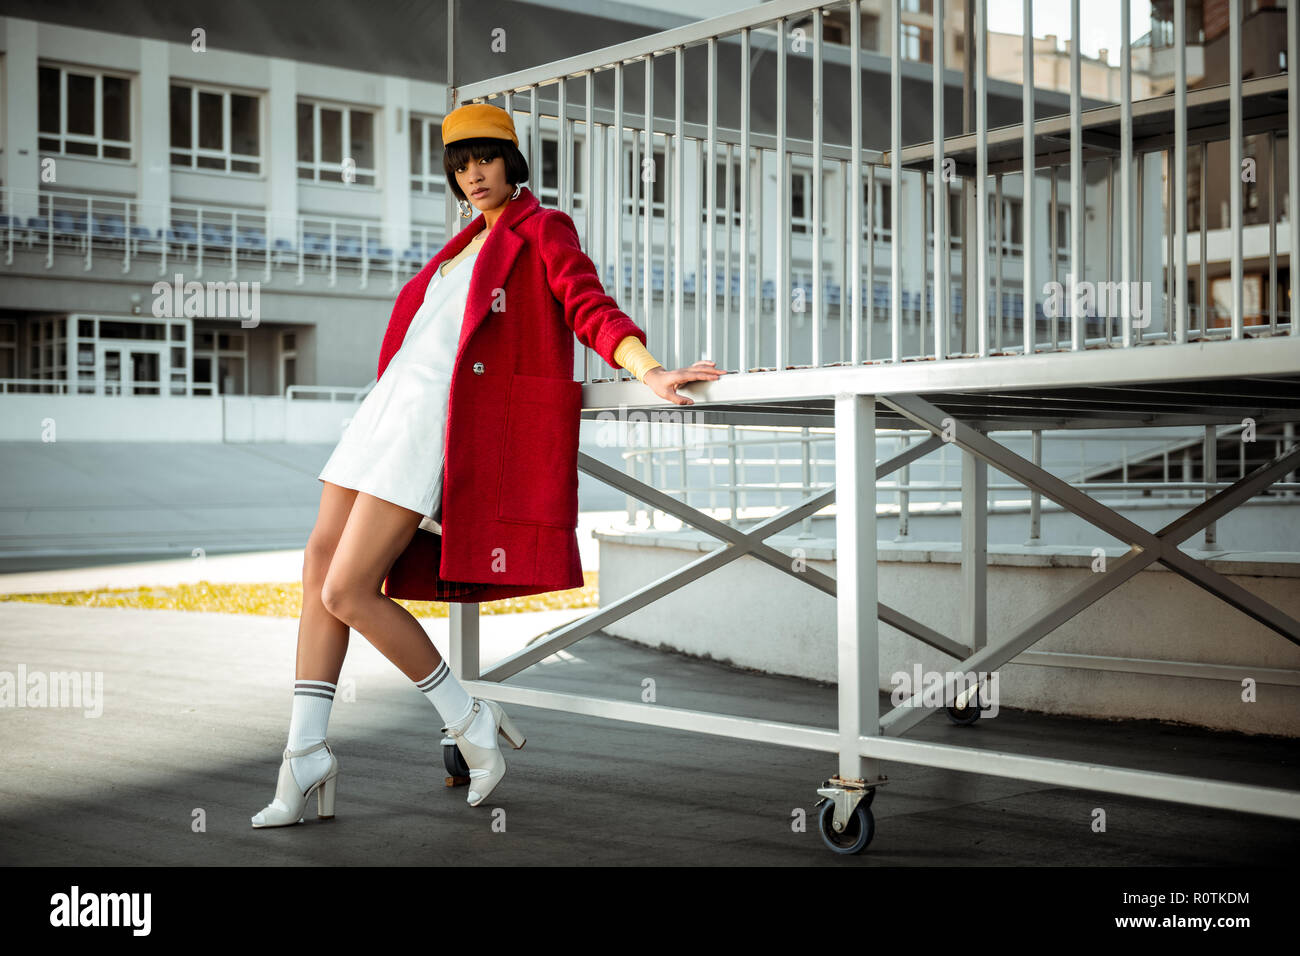 Remarkable fit model leaning on metal platform - Stock Image